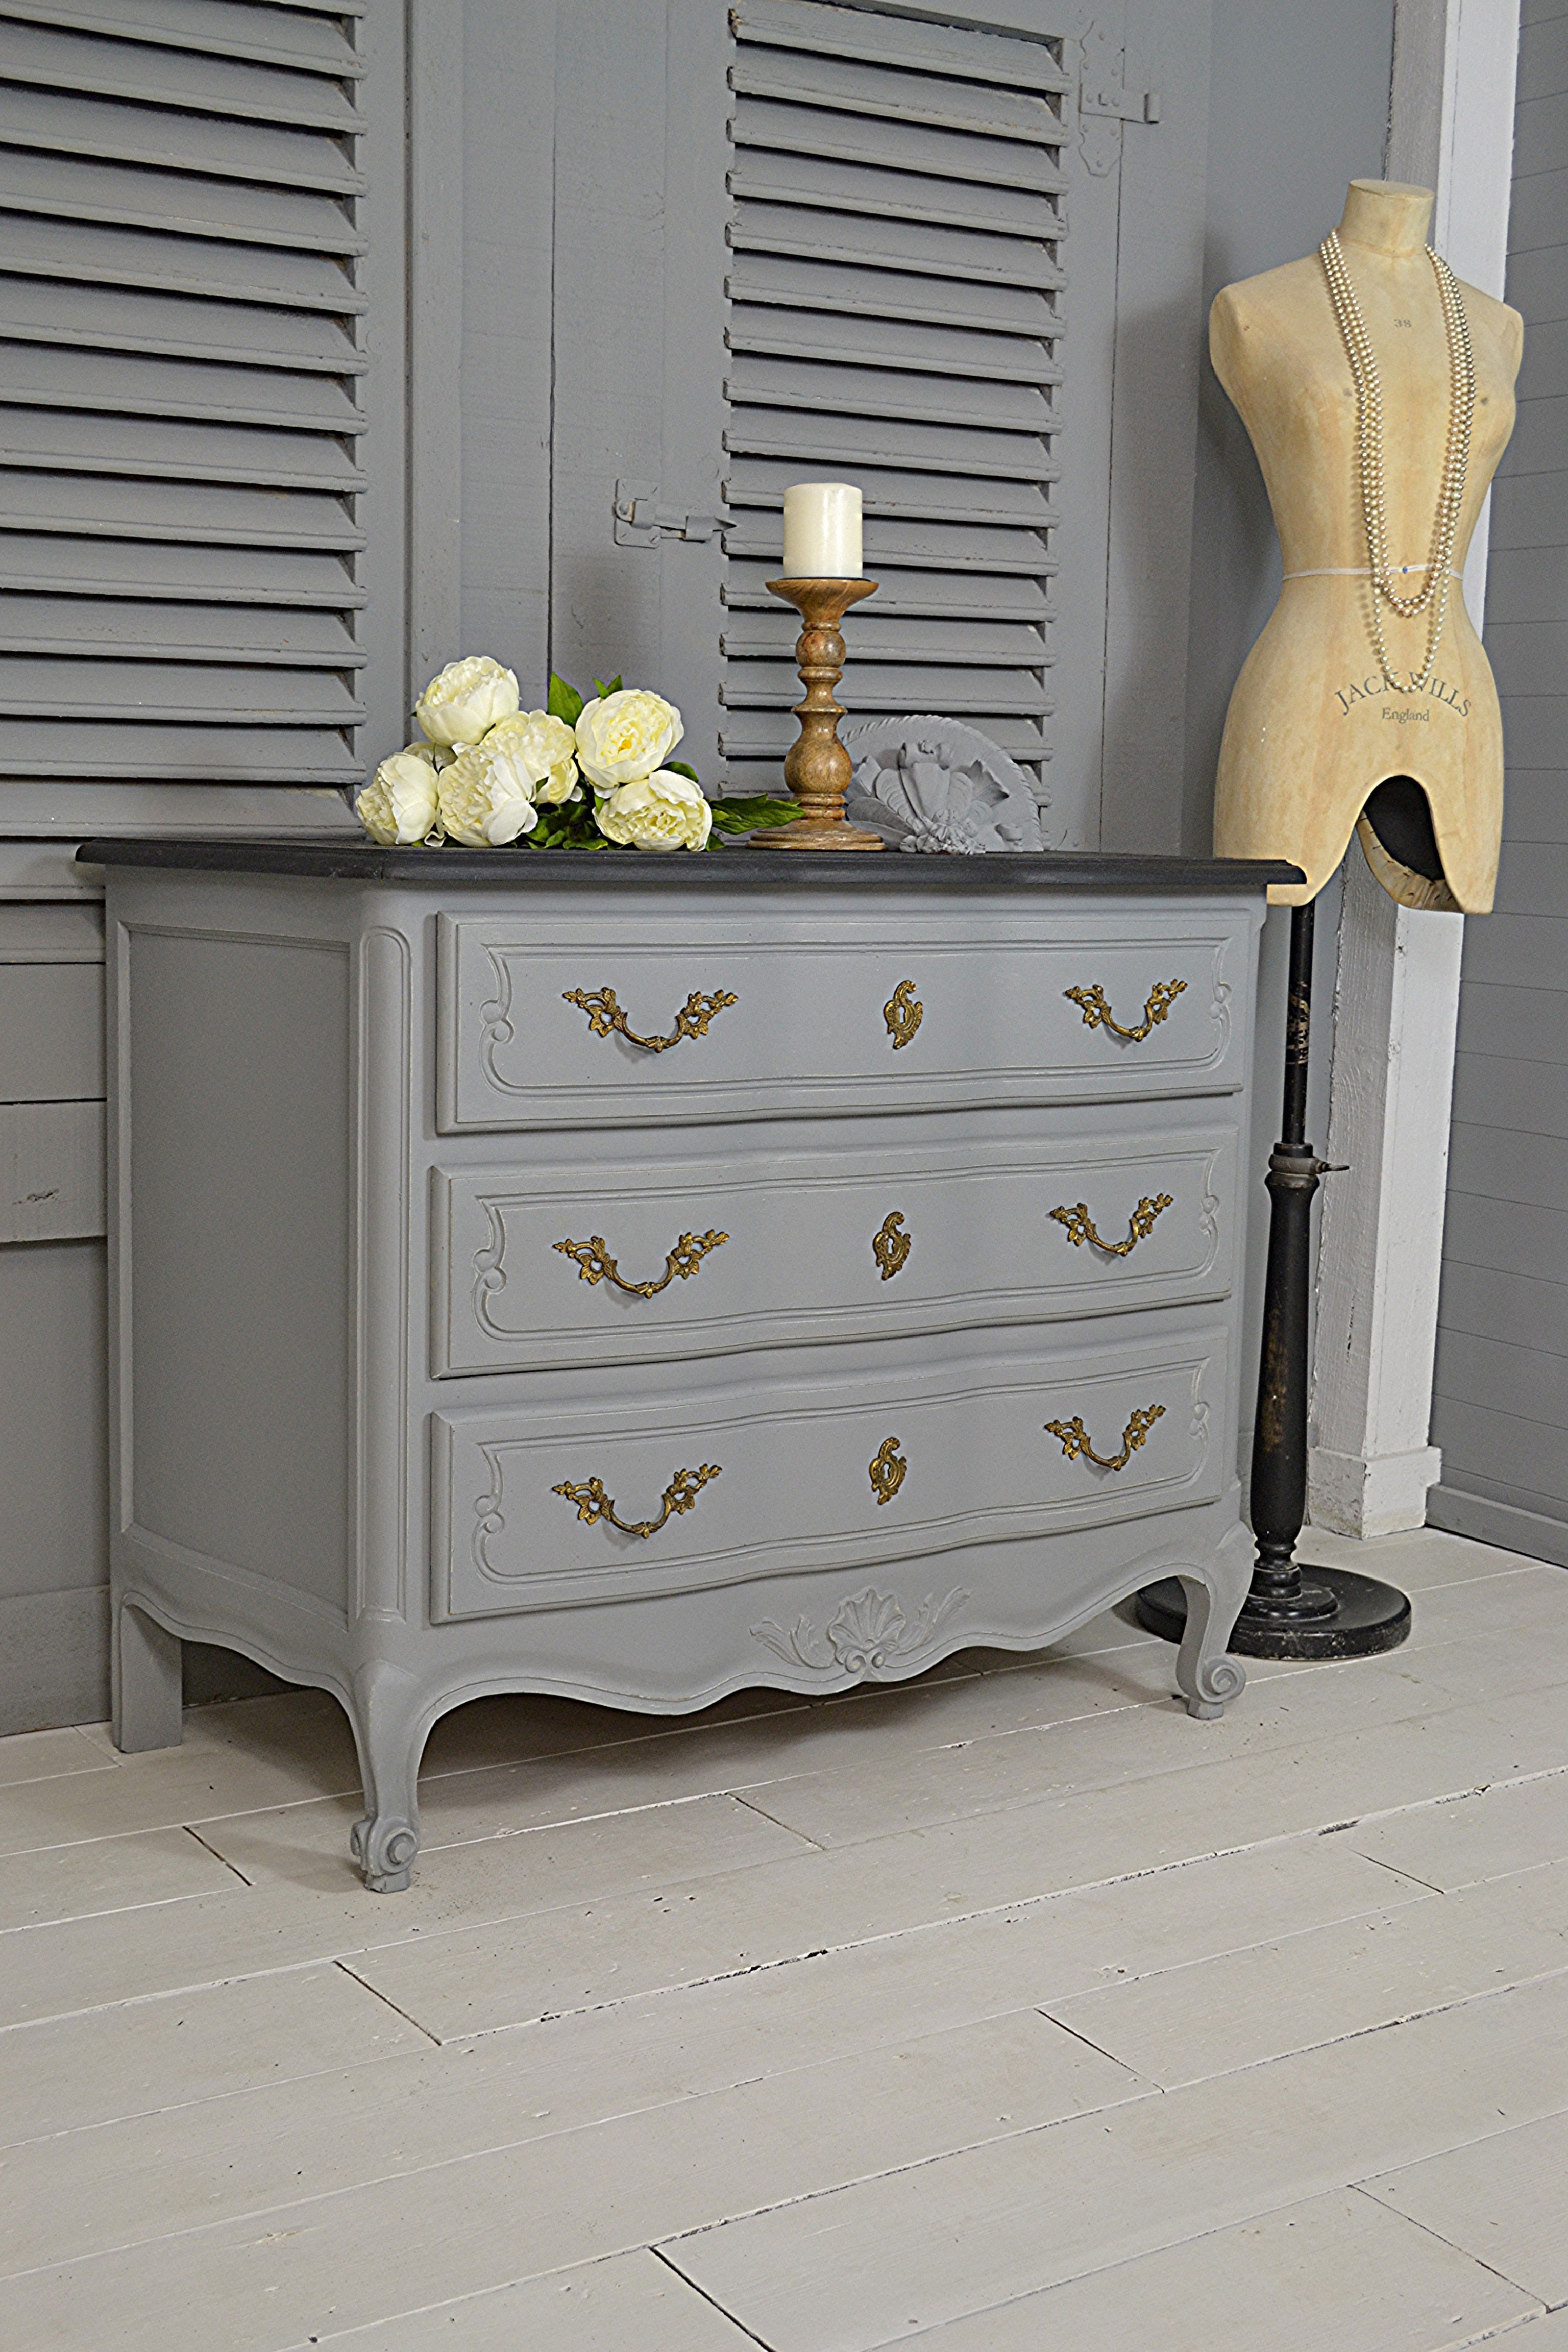 white drawers gallery photos sideboard for chest furniture interior sideboards of shabby chic showing drawer attachment explore fleur